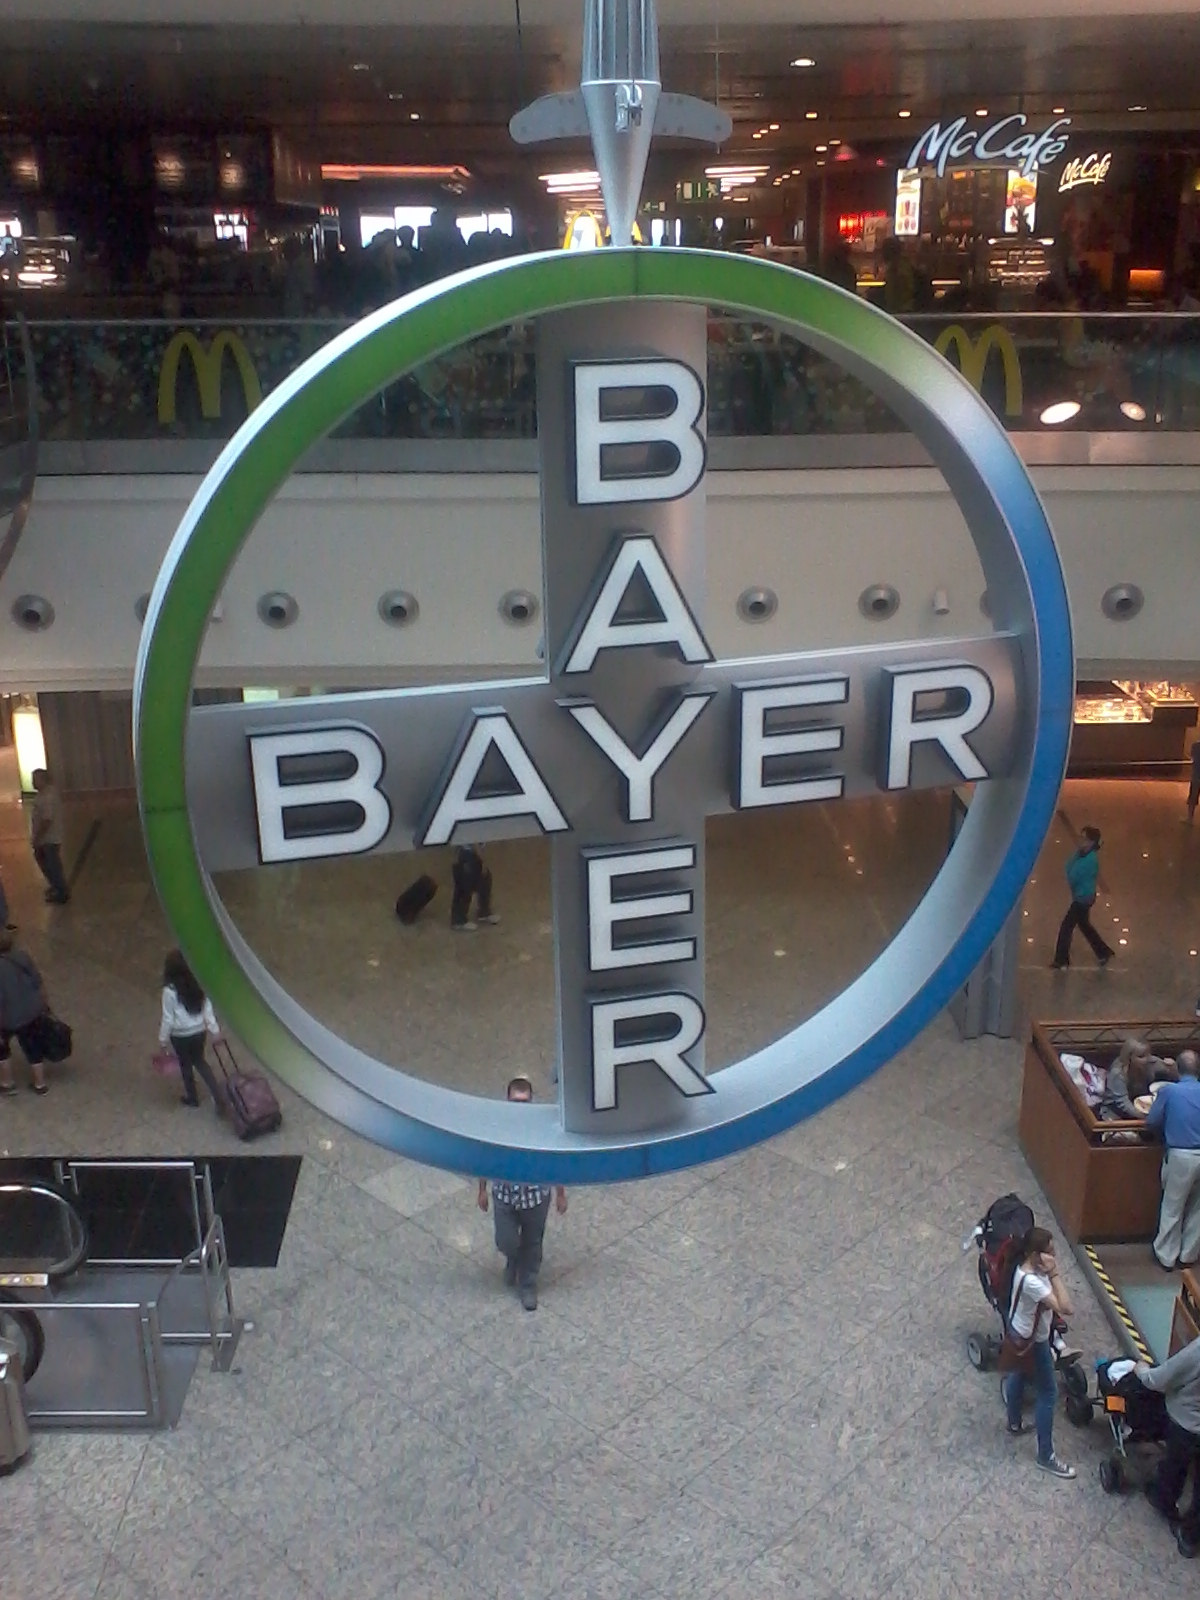 Bayer Sued After MRIs Result in Gadolinium Toxicity - Arentz Law Group